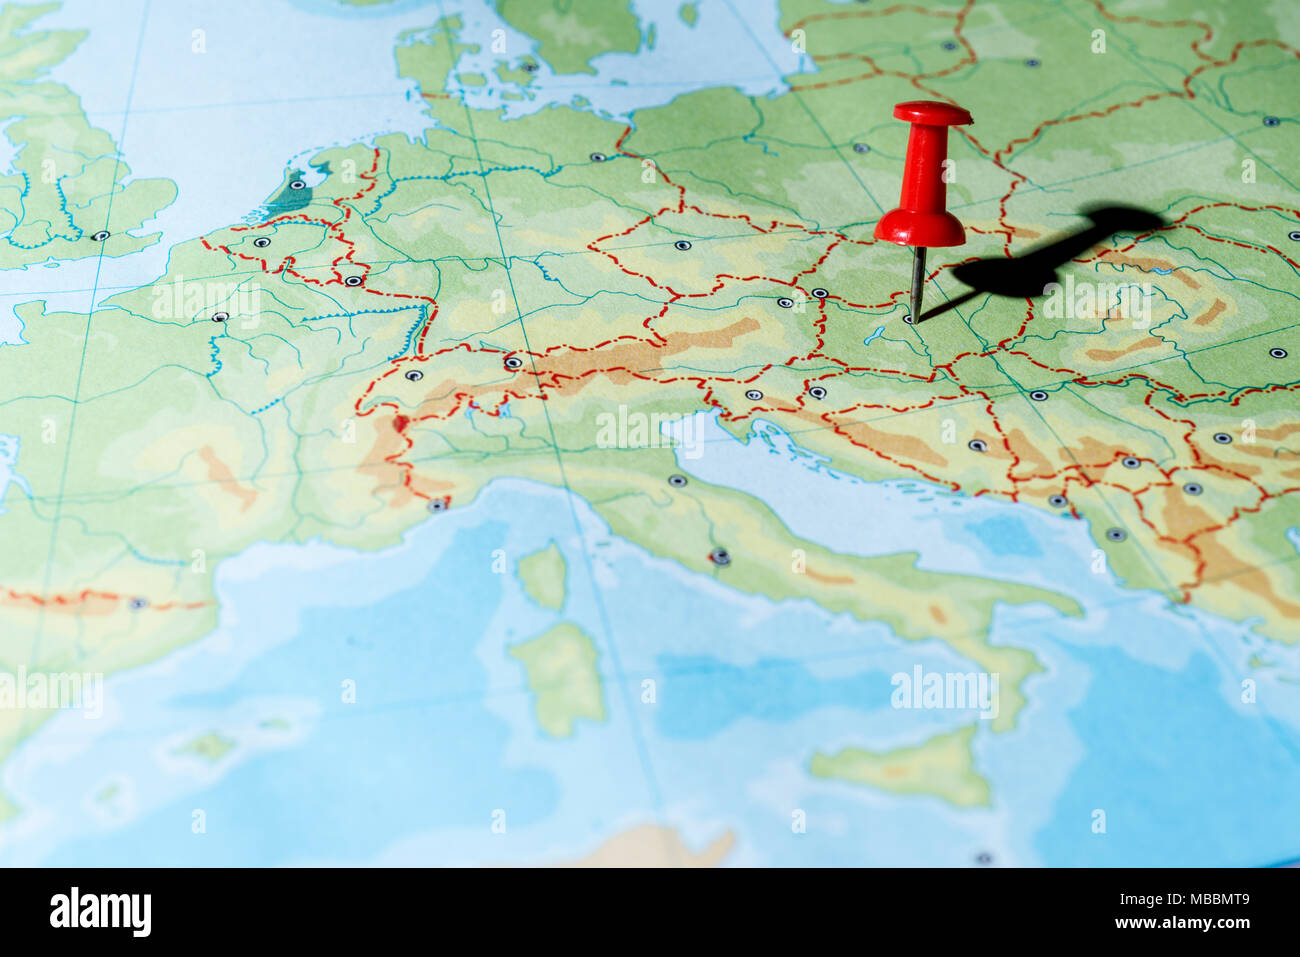 Budapest City Map Stock Photos Budapest City Map Stock Images Alamy